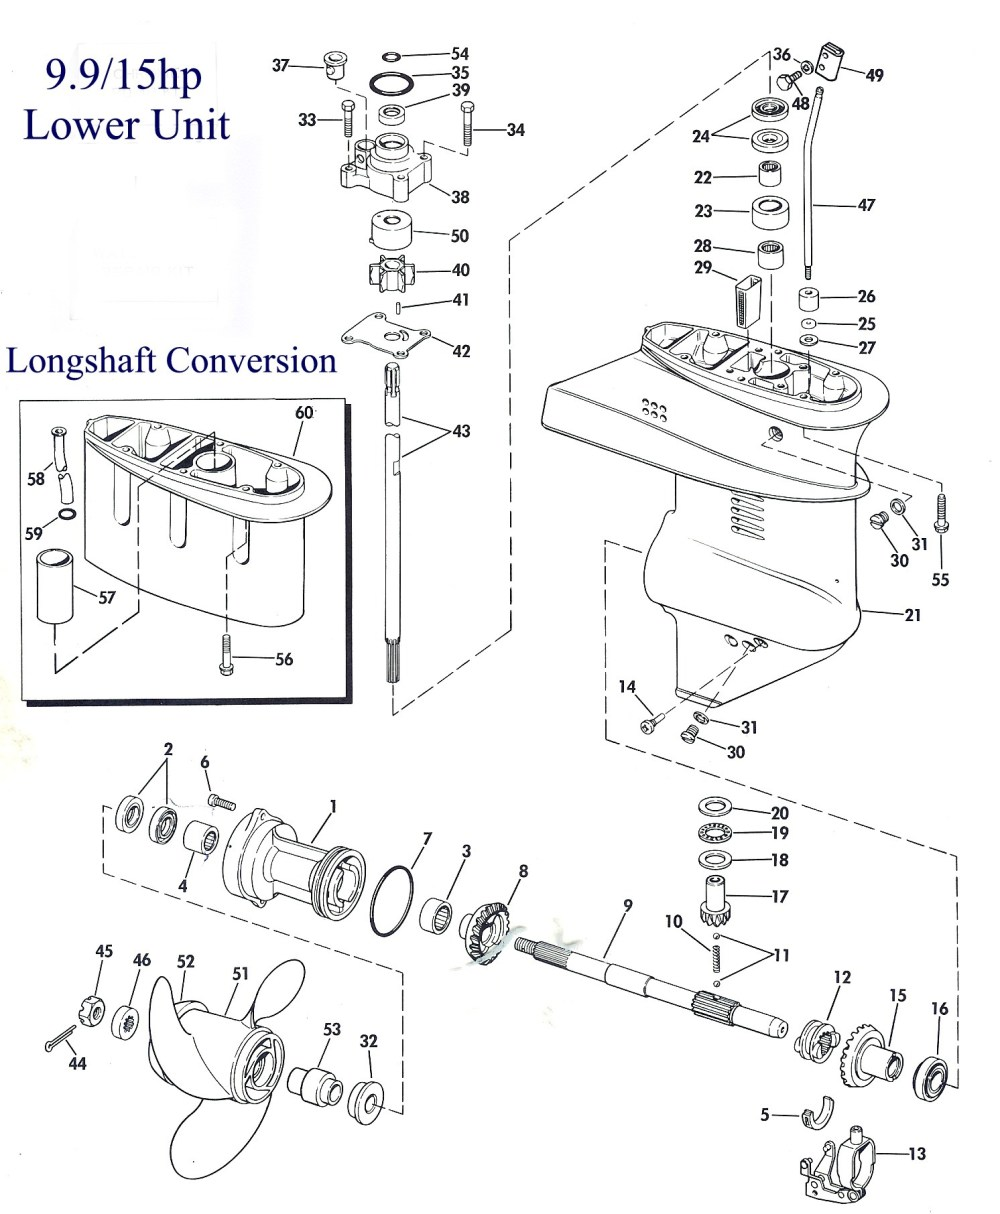 medium resolution of mercury lower unit wiring diagram wiring diagram blog honda 225 lower unit diagram honda lower unit diagram